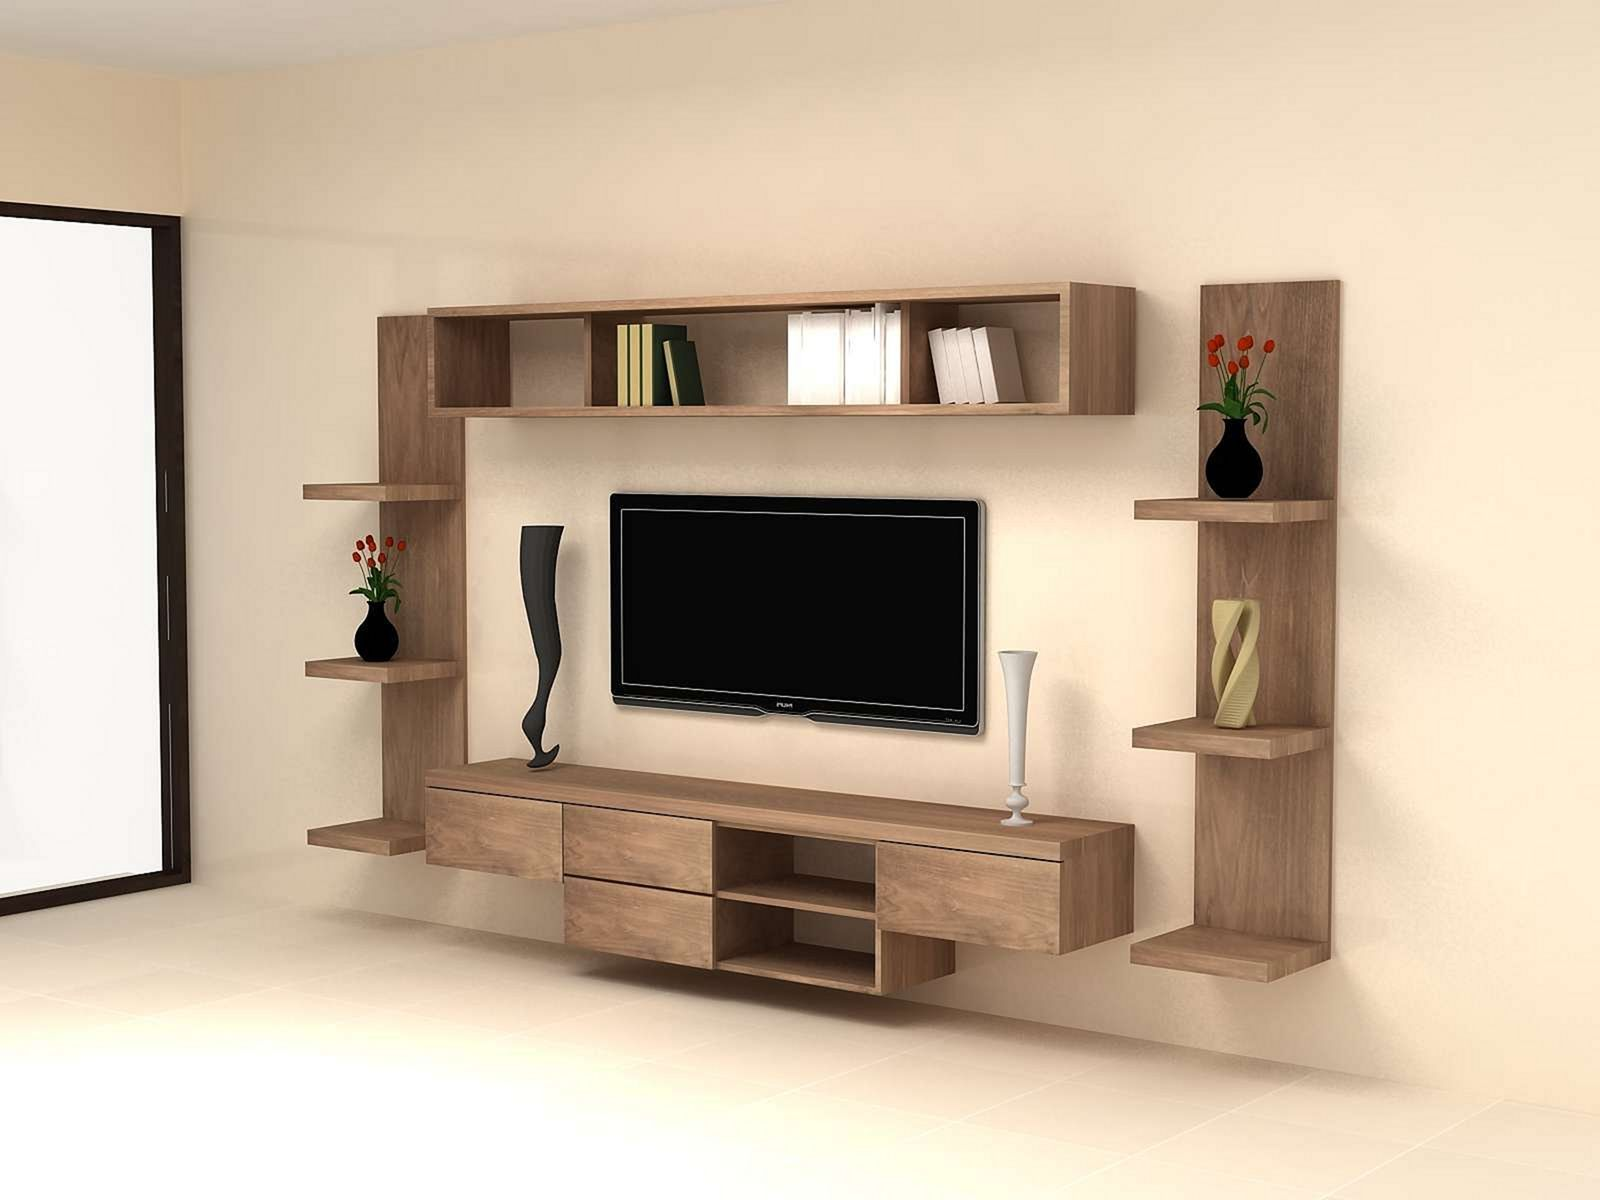 28 Amazing Modern Tv Cabinets Design For Your Home Inspiration Freshouz Com Modern Tv Wall Units Modern Tv Units Tv Cabinet Design